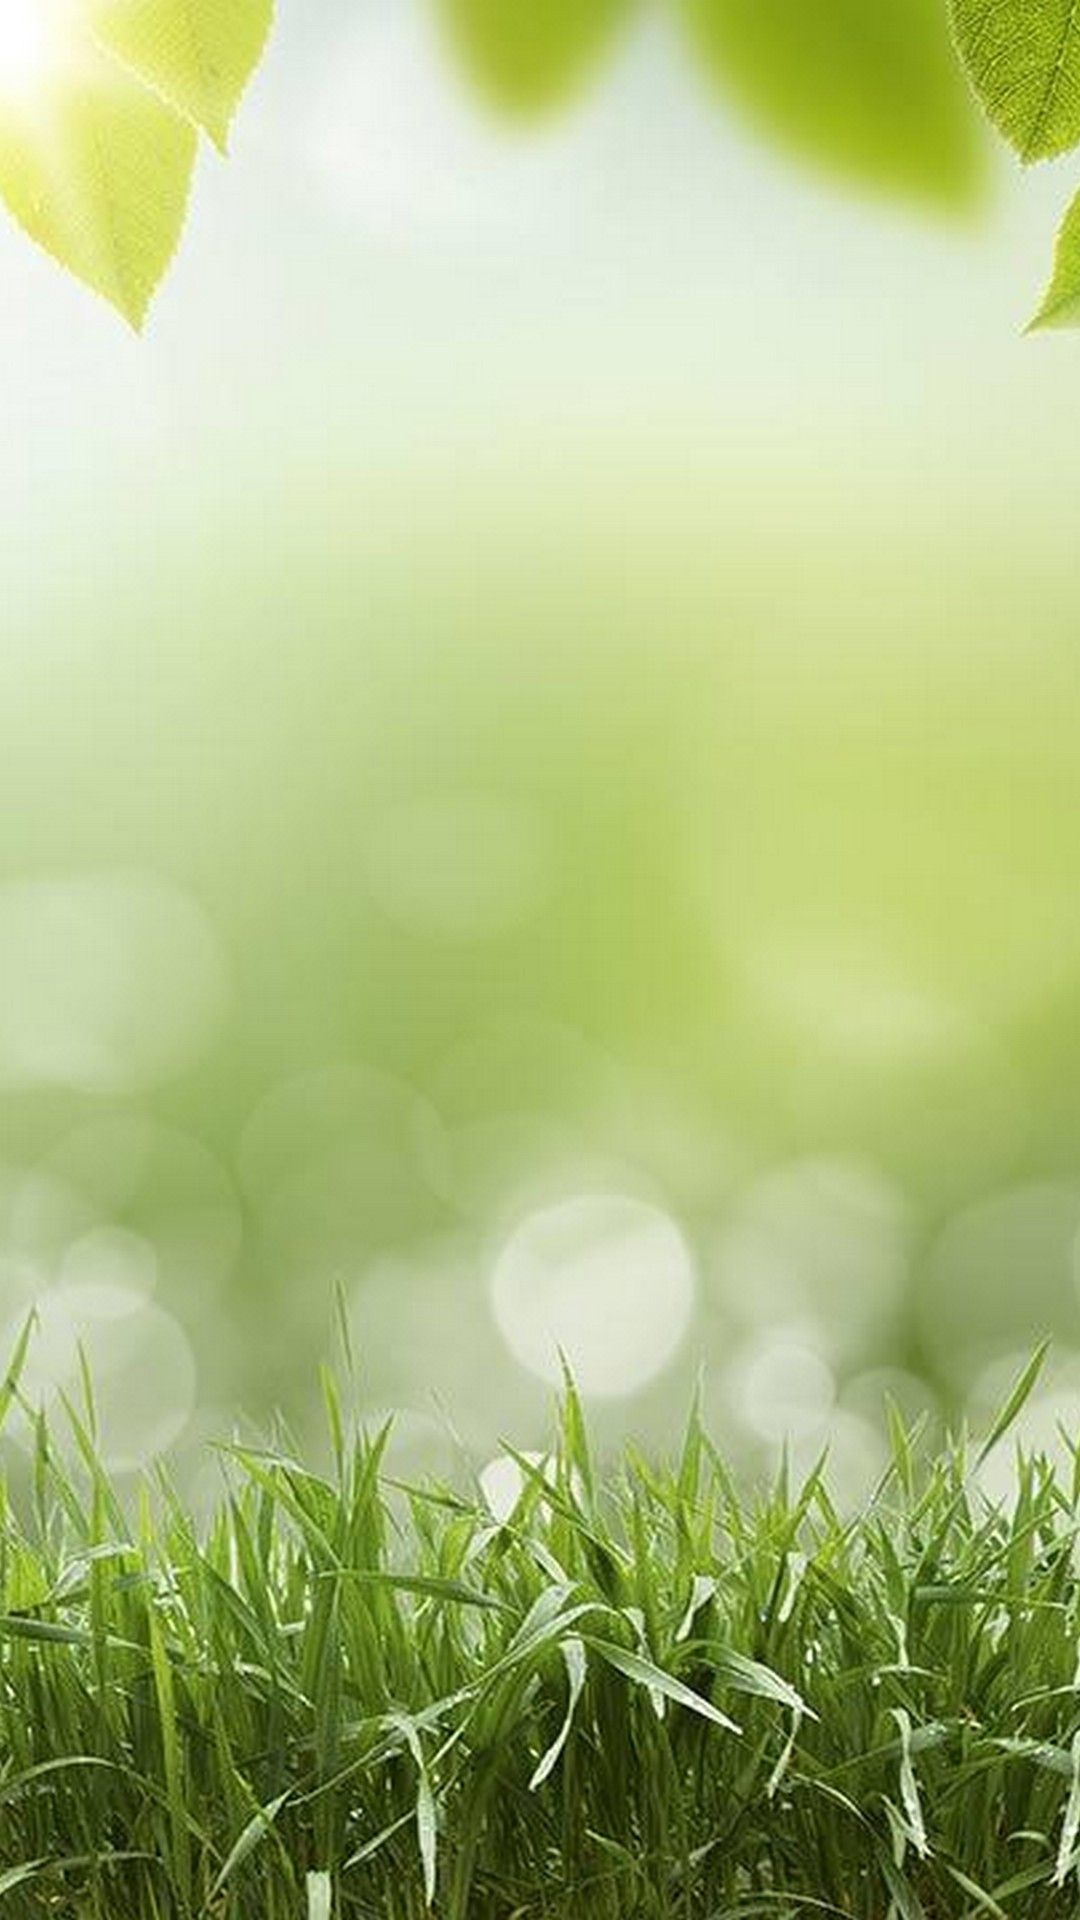 List of Great Green Phone Wallpaper HD Today by Uploaded by user